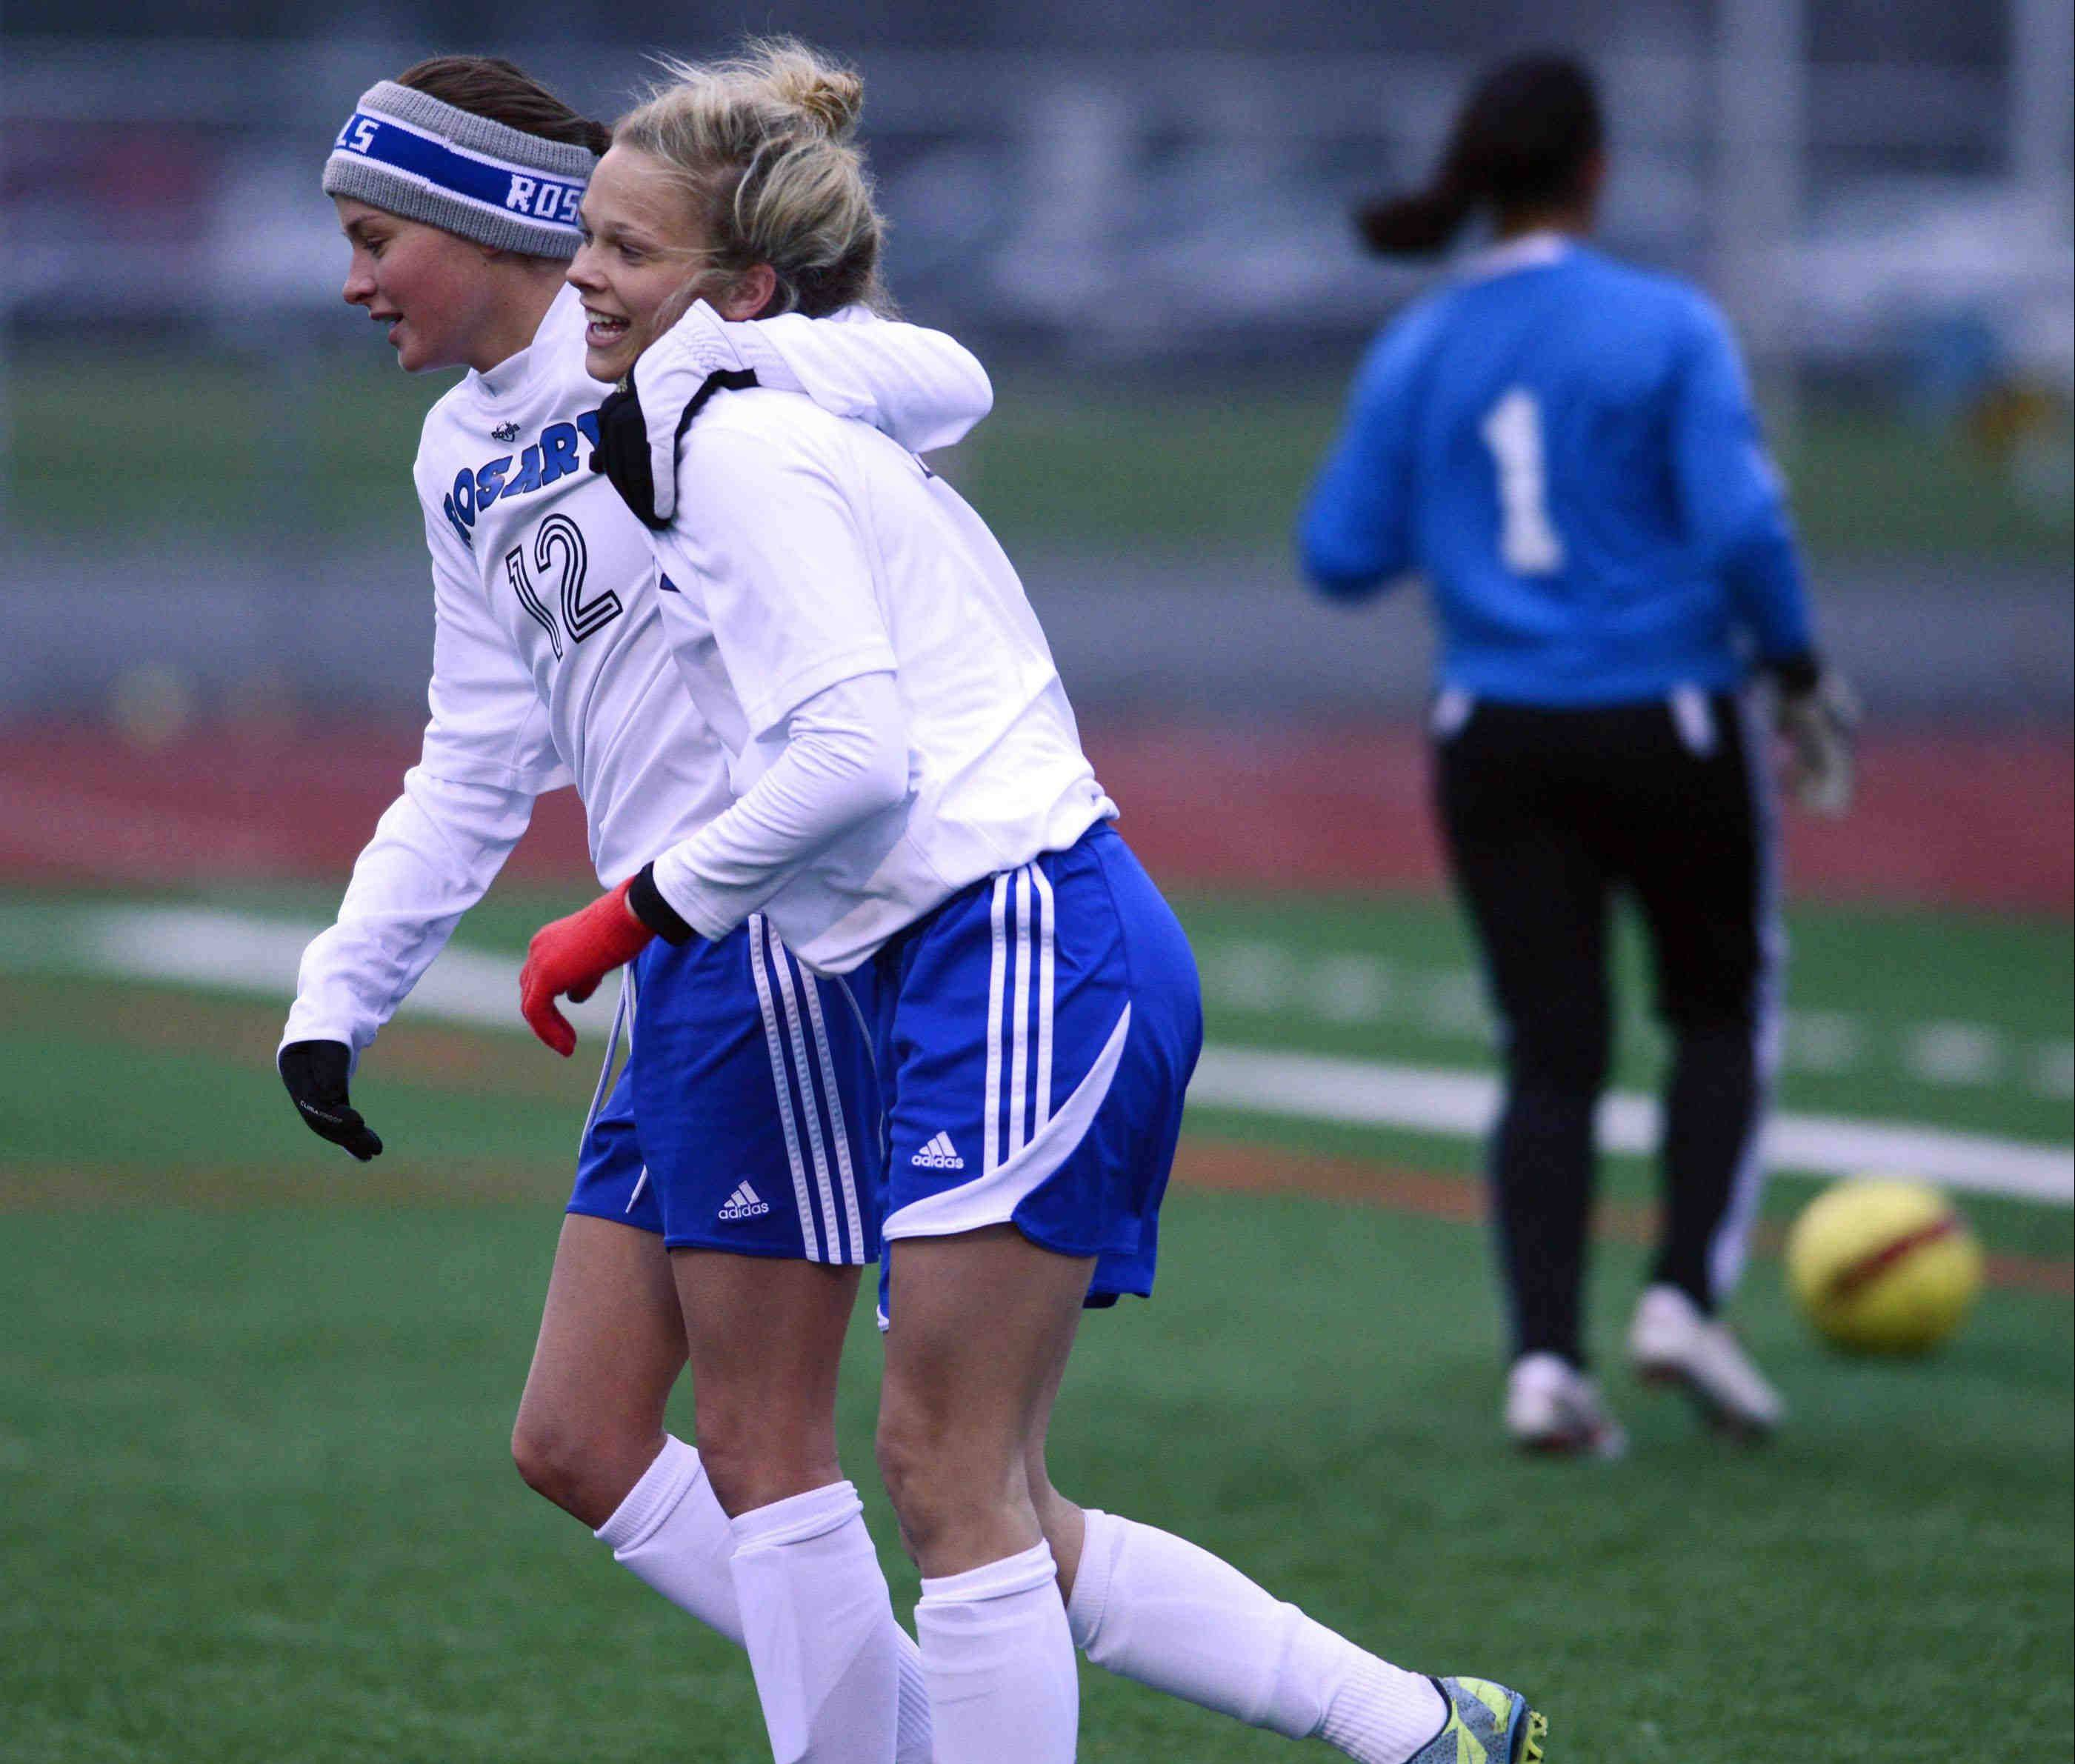 Rosary's Kaitlin Johnson hugs teammate Quincy Kellett after Kellet's first goal against West Aurora Wednesday in Aurora. They both scored in the first half of the Royals' 6-2 victory.